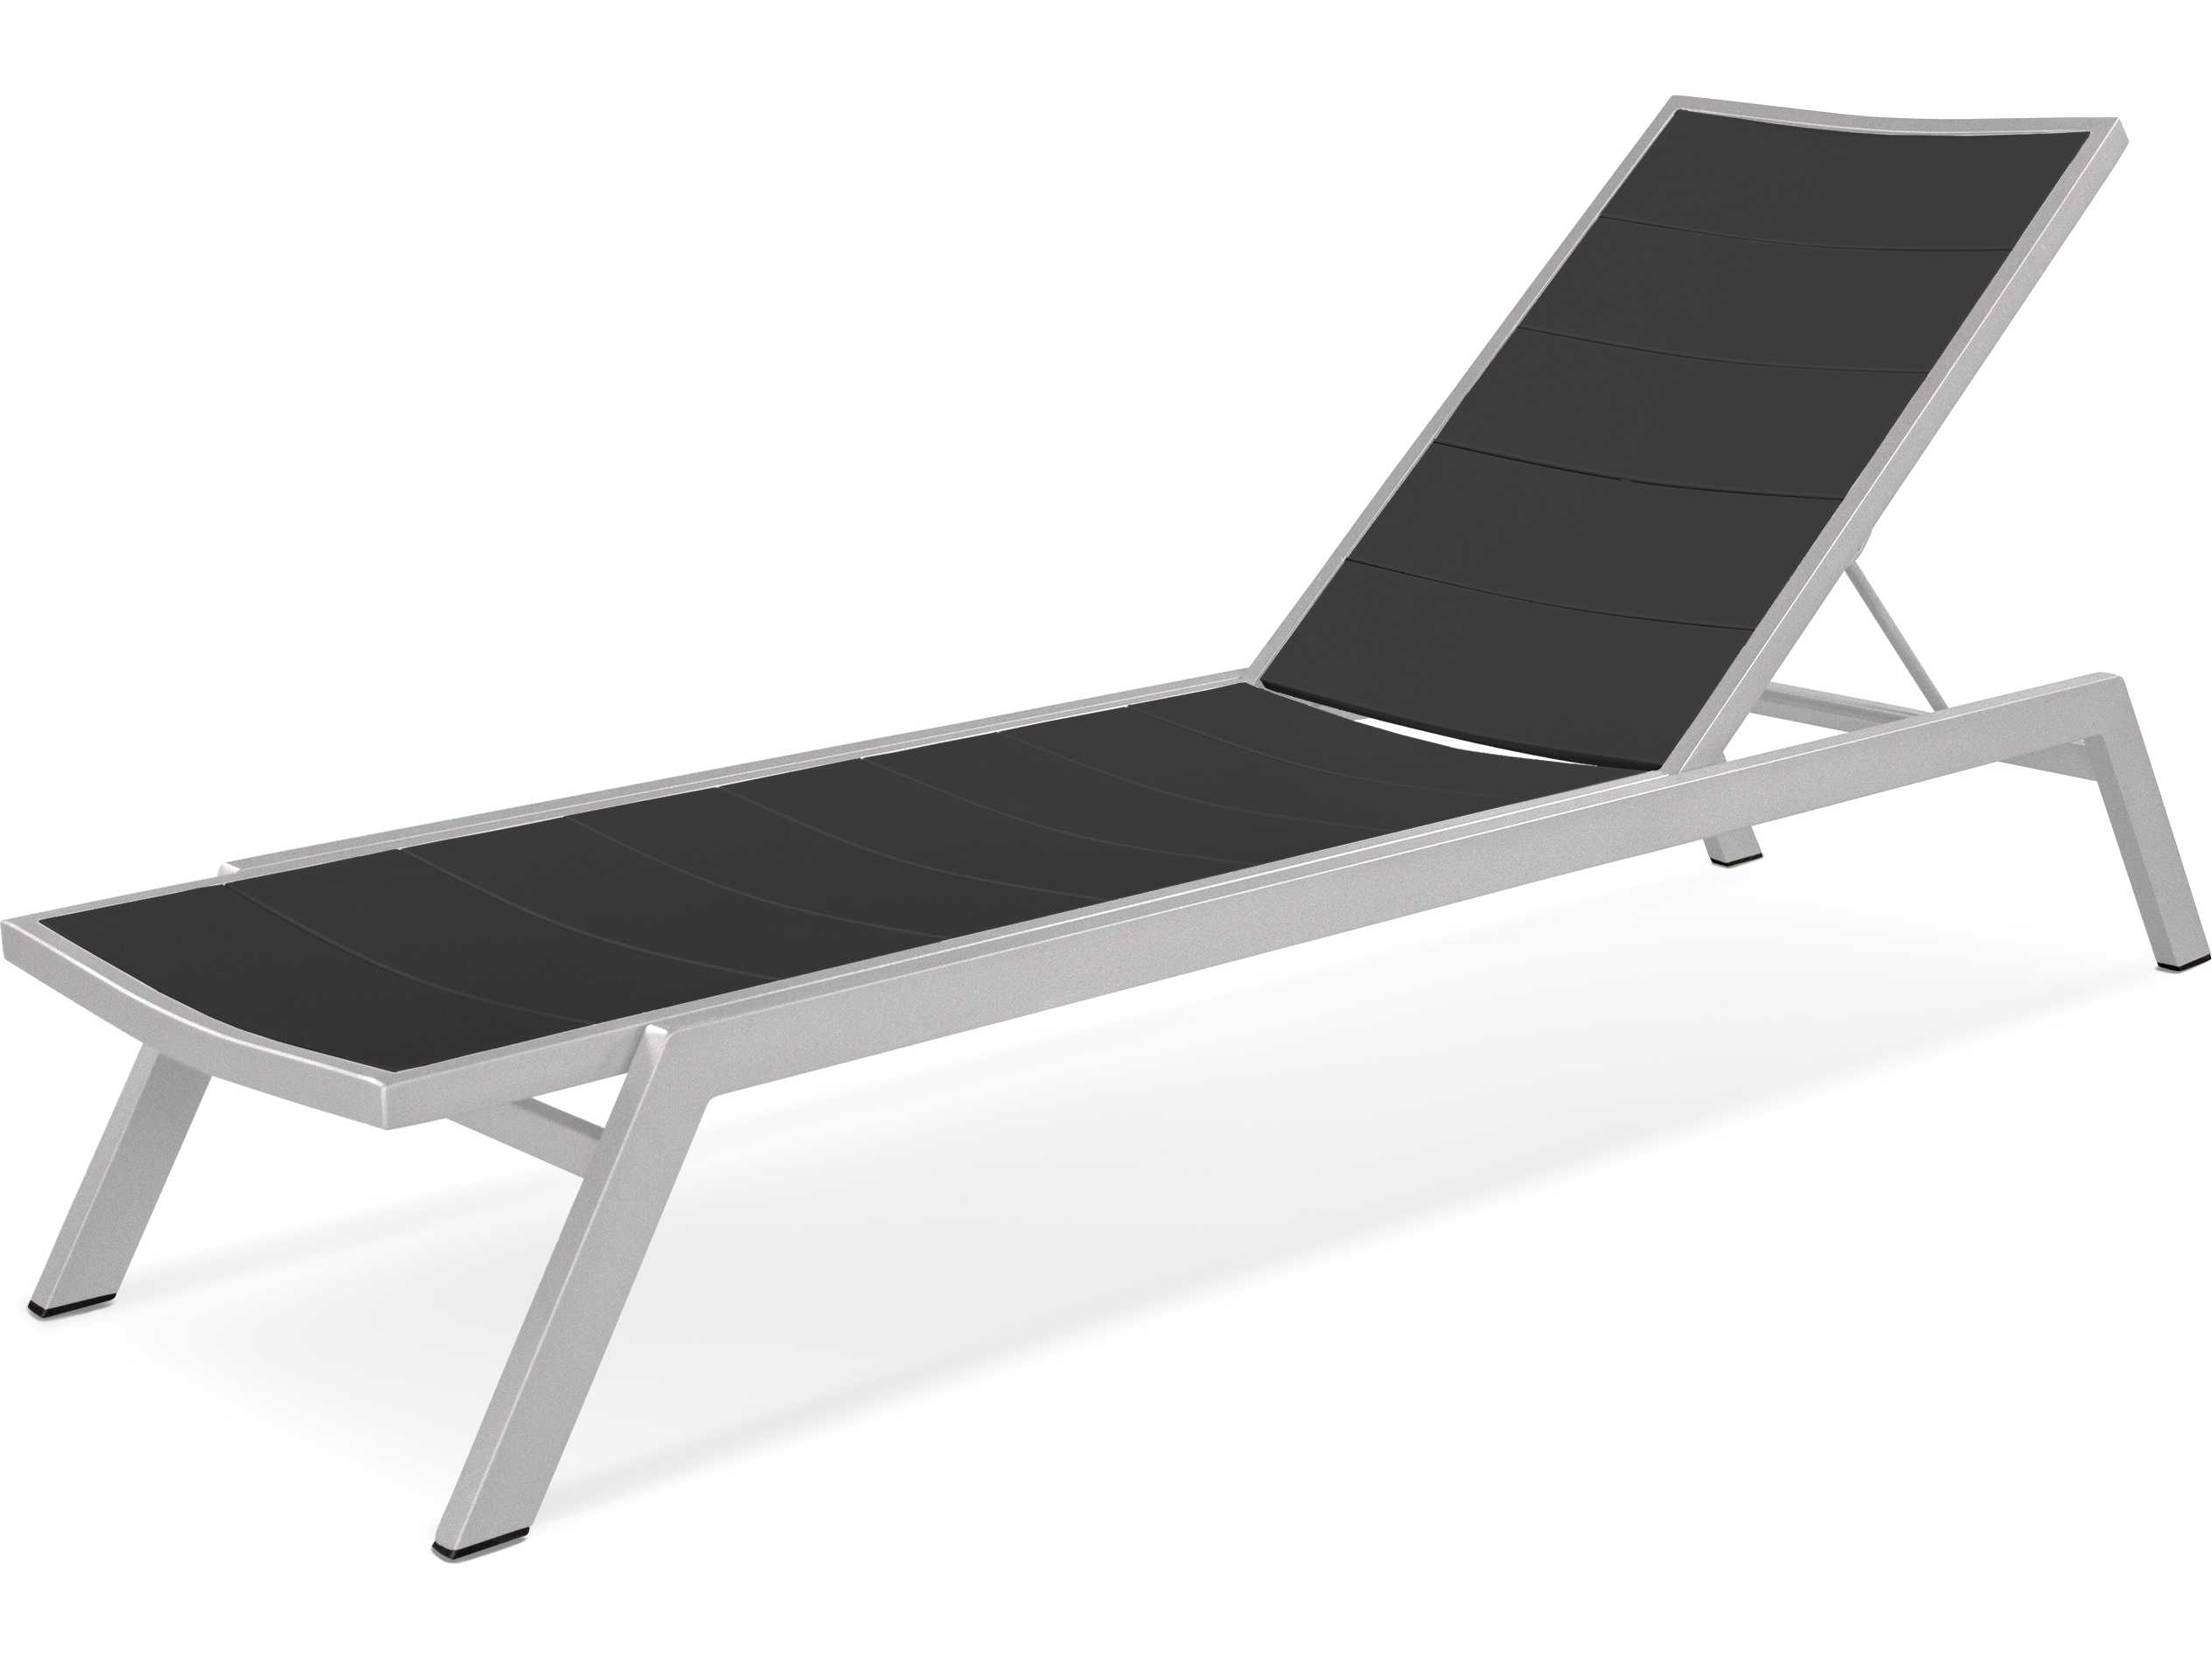 Polywood metro aluminum adjustable chaise lounge pwac120 for Aluminum chaise lounges